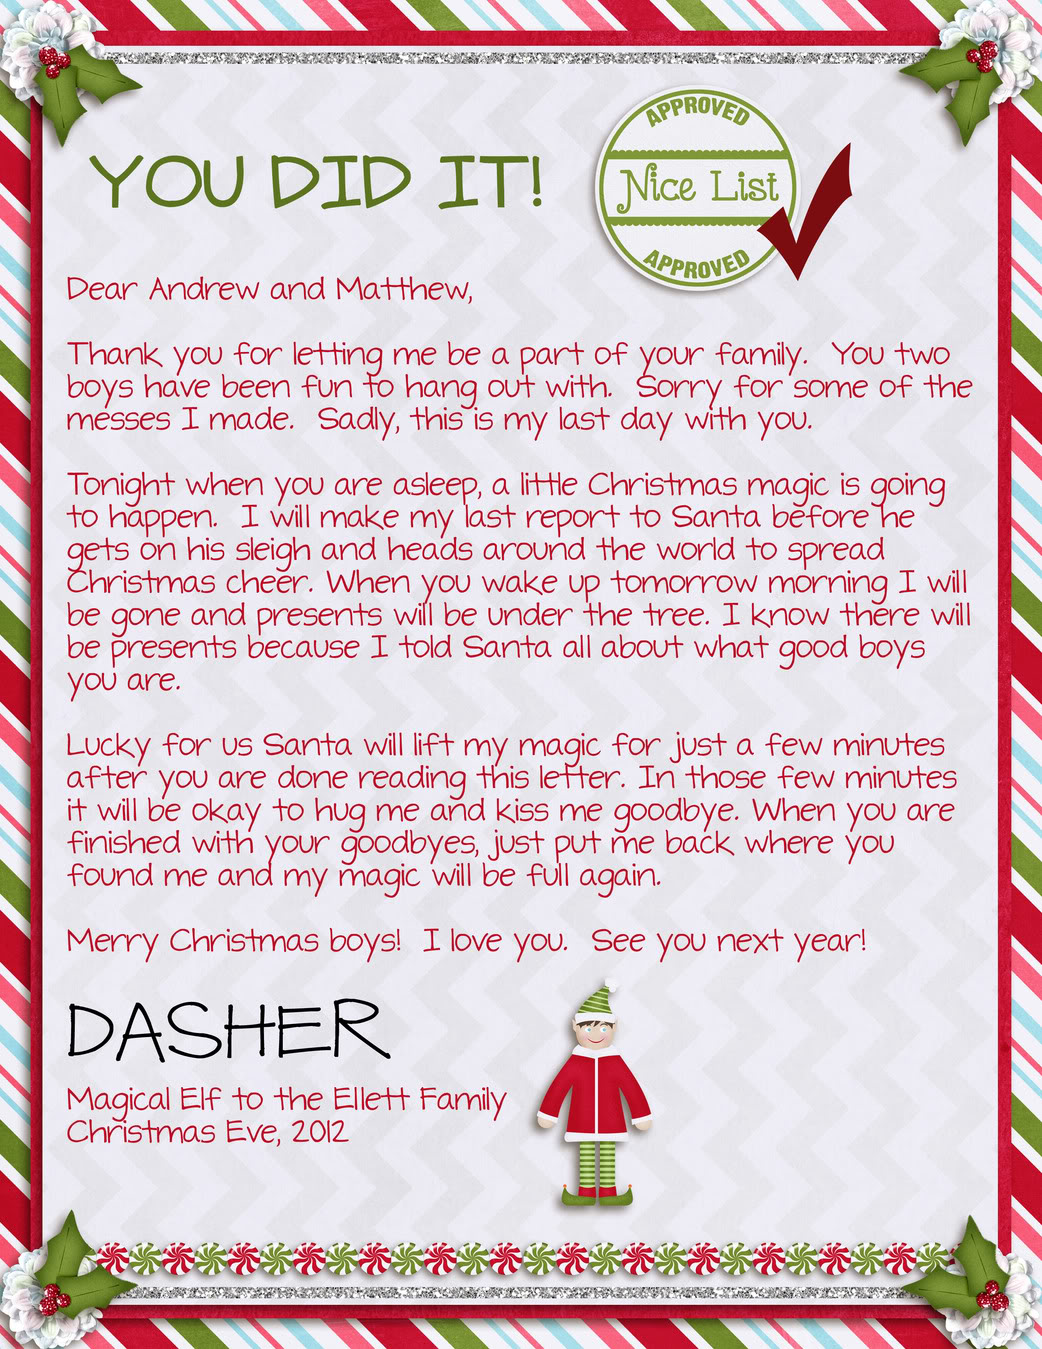 elf on the shelf letters printable 15 helpful on the shelf goodbye letters 10180 | elf shelf goodbye 13